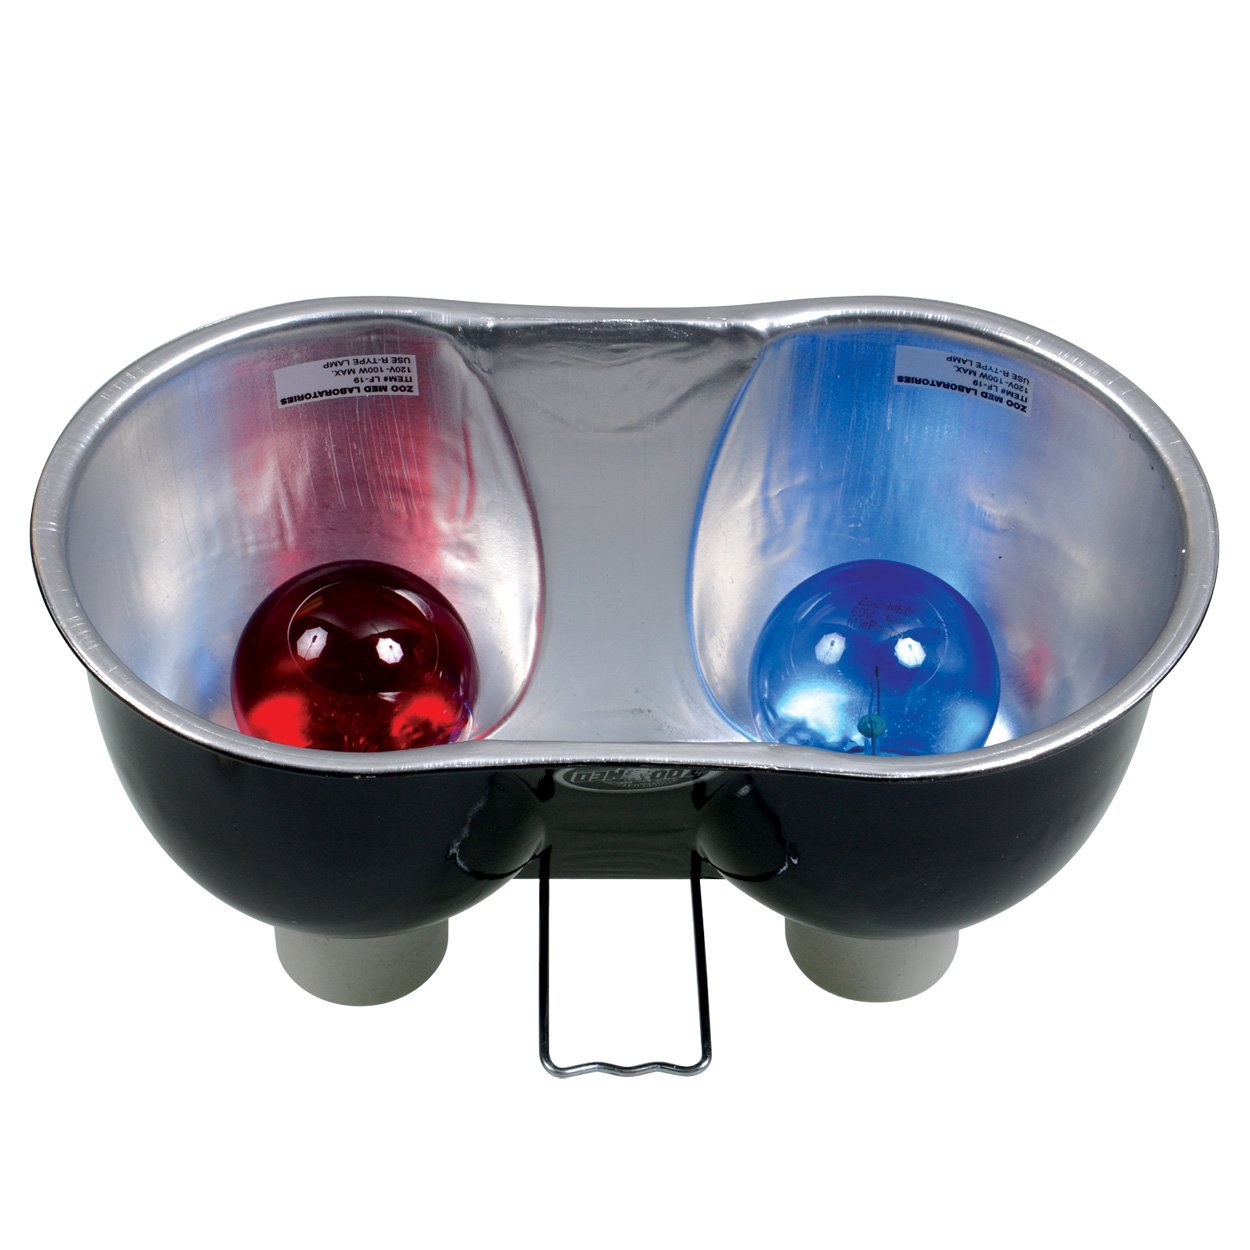 Day Night Tropical Lighting Kit, This product is easy to use By Zoo Med by